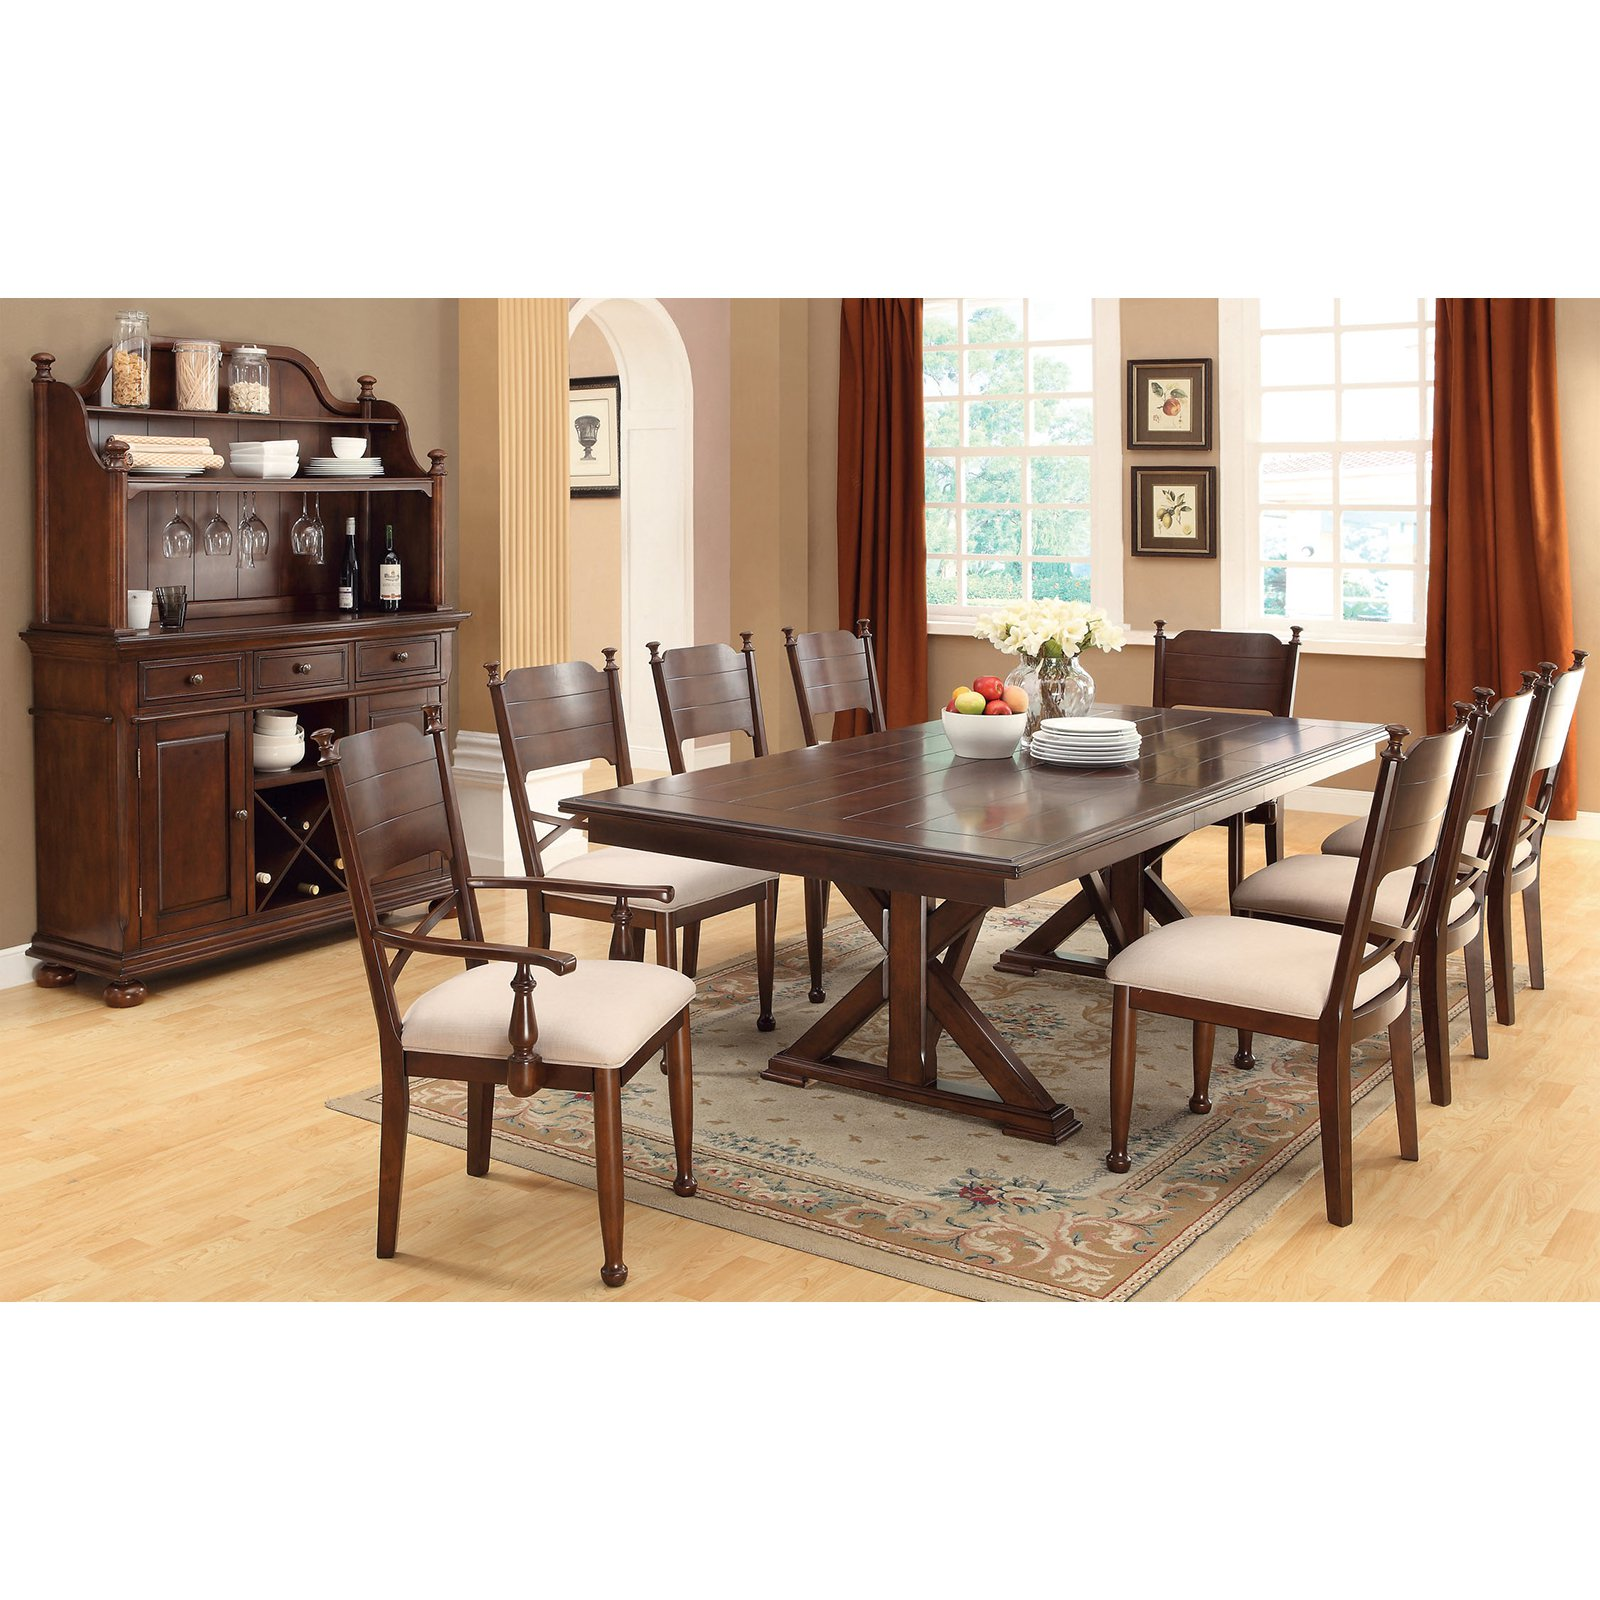 Furniture of America New England Double Pedestal Dining Table - Brown Cherry